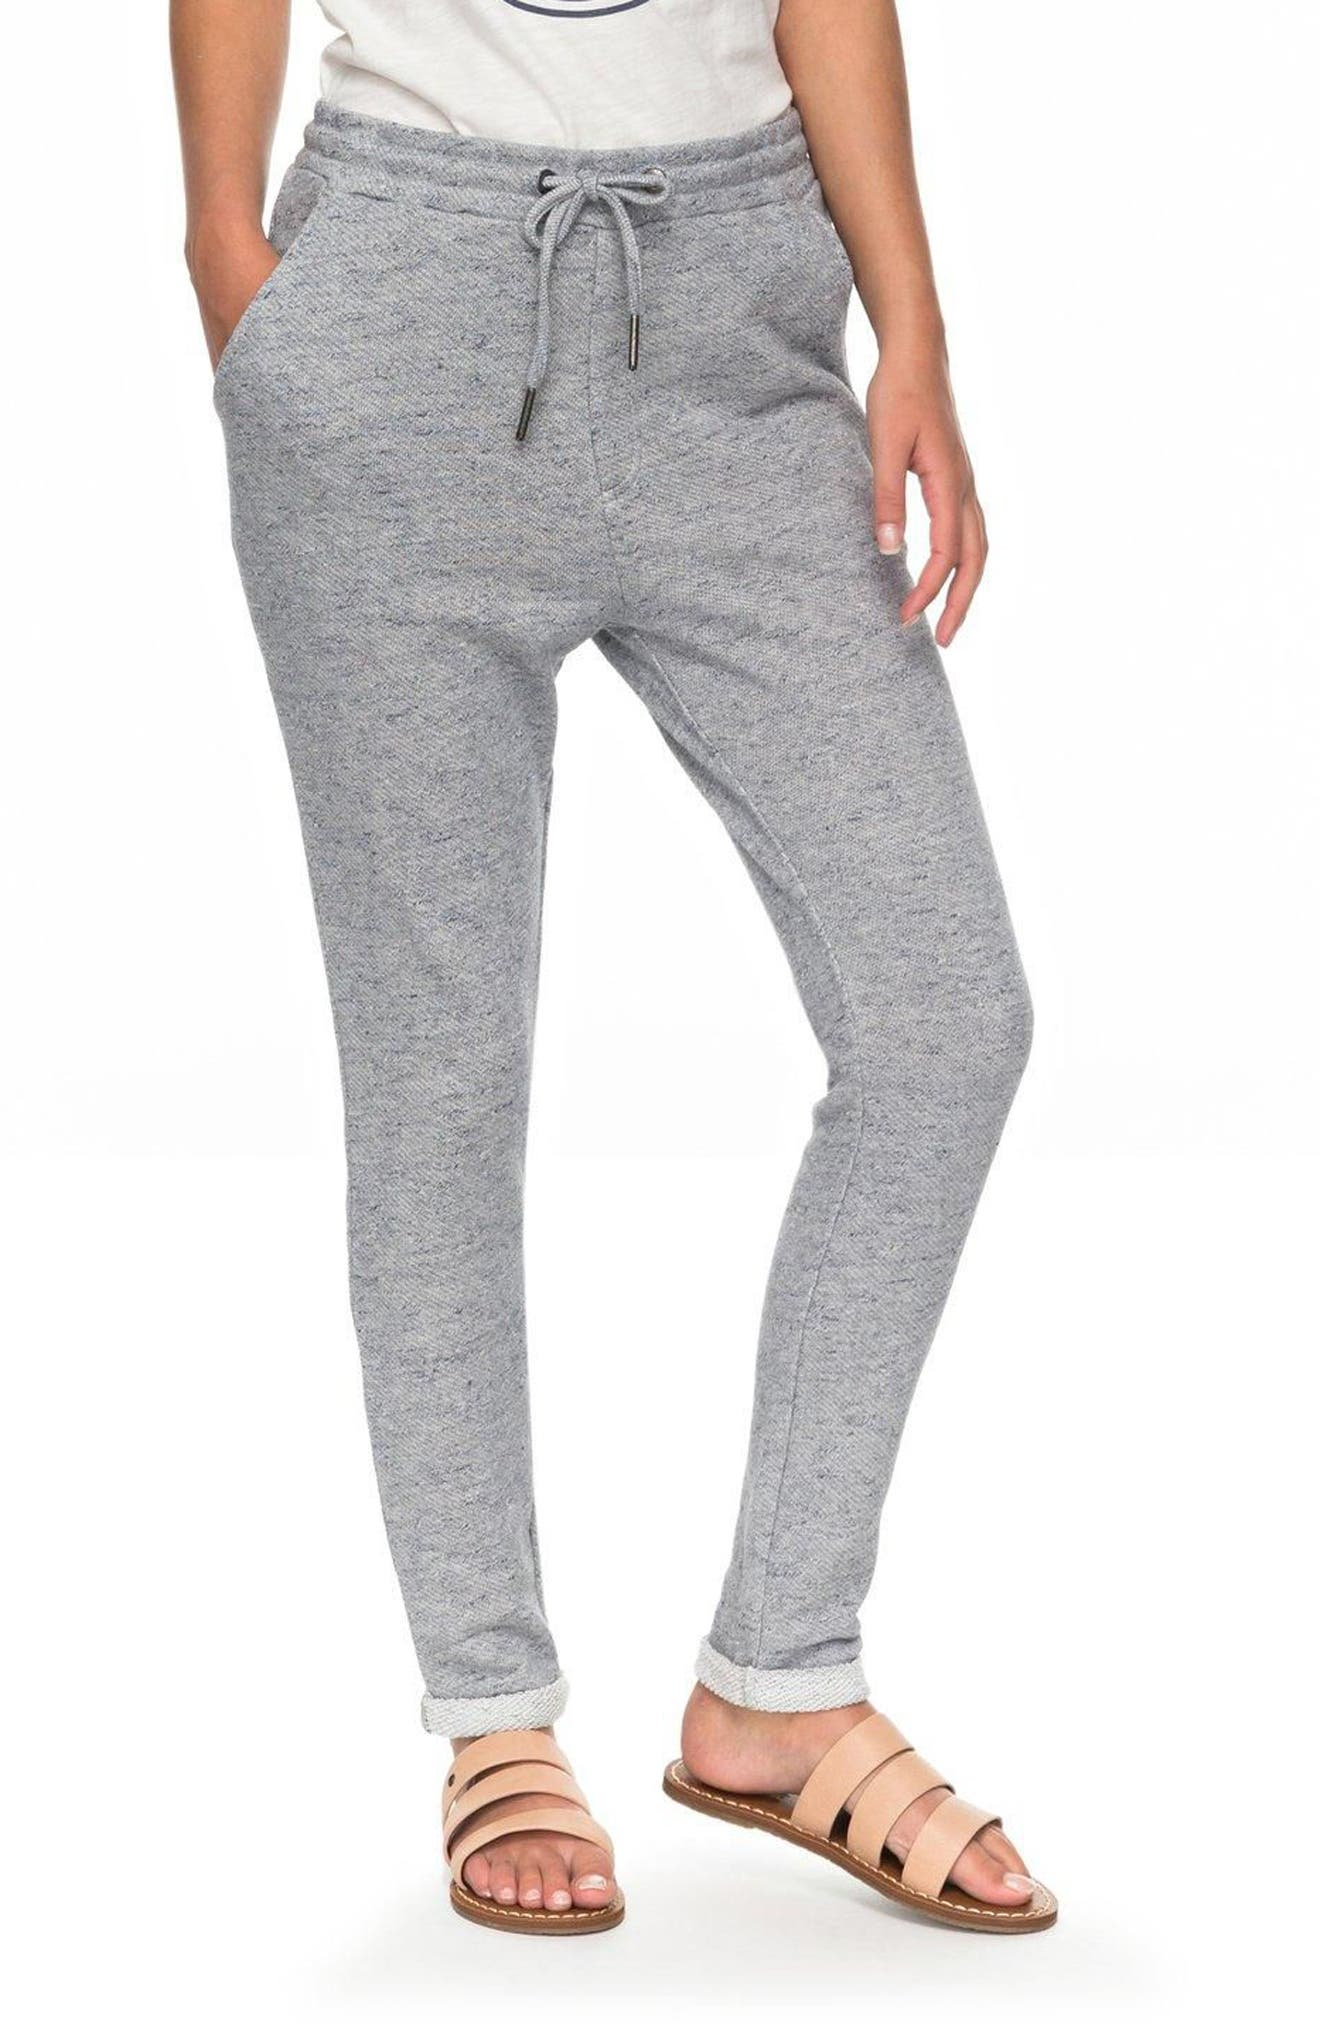 Alternate Image 1 Selected - Roxy Trippin Sweatpants